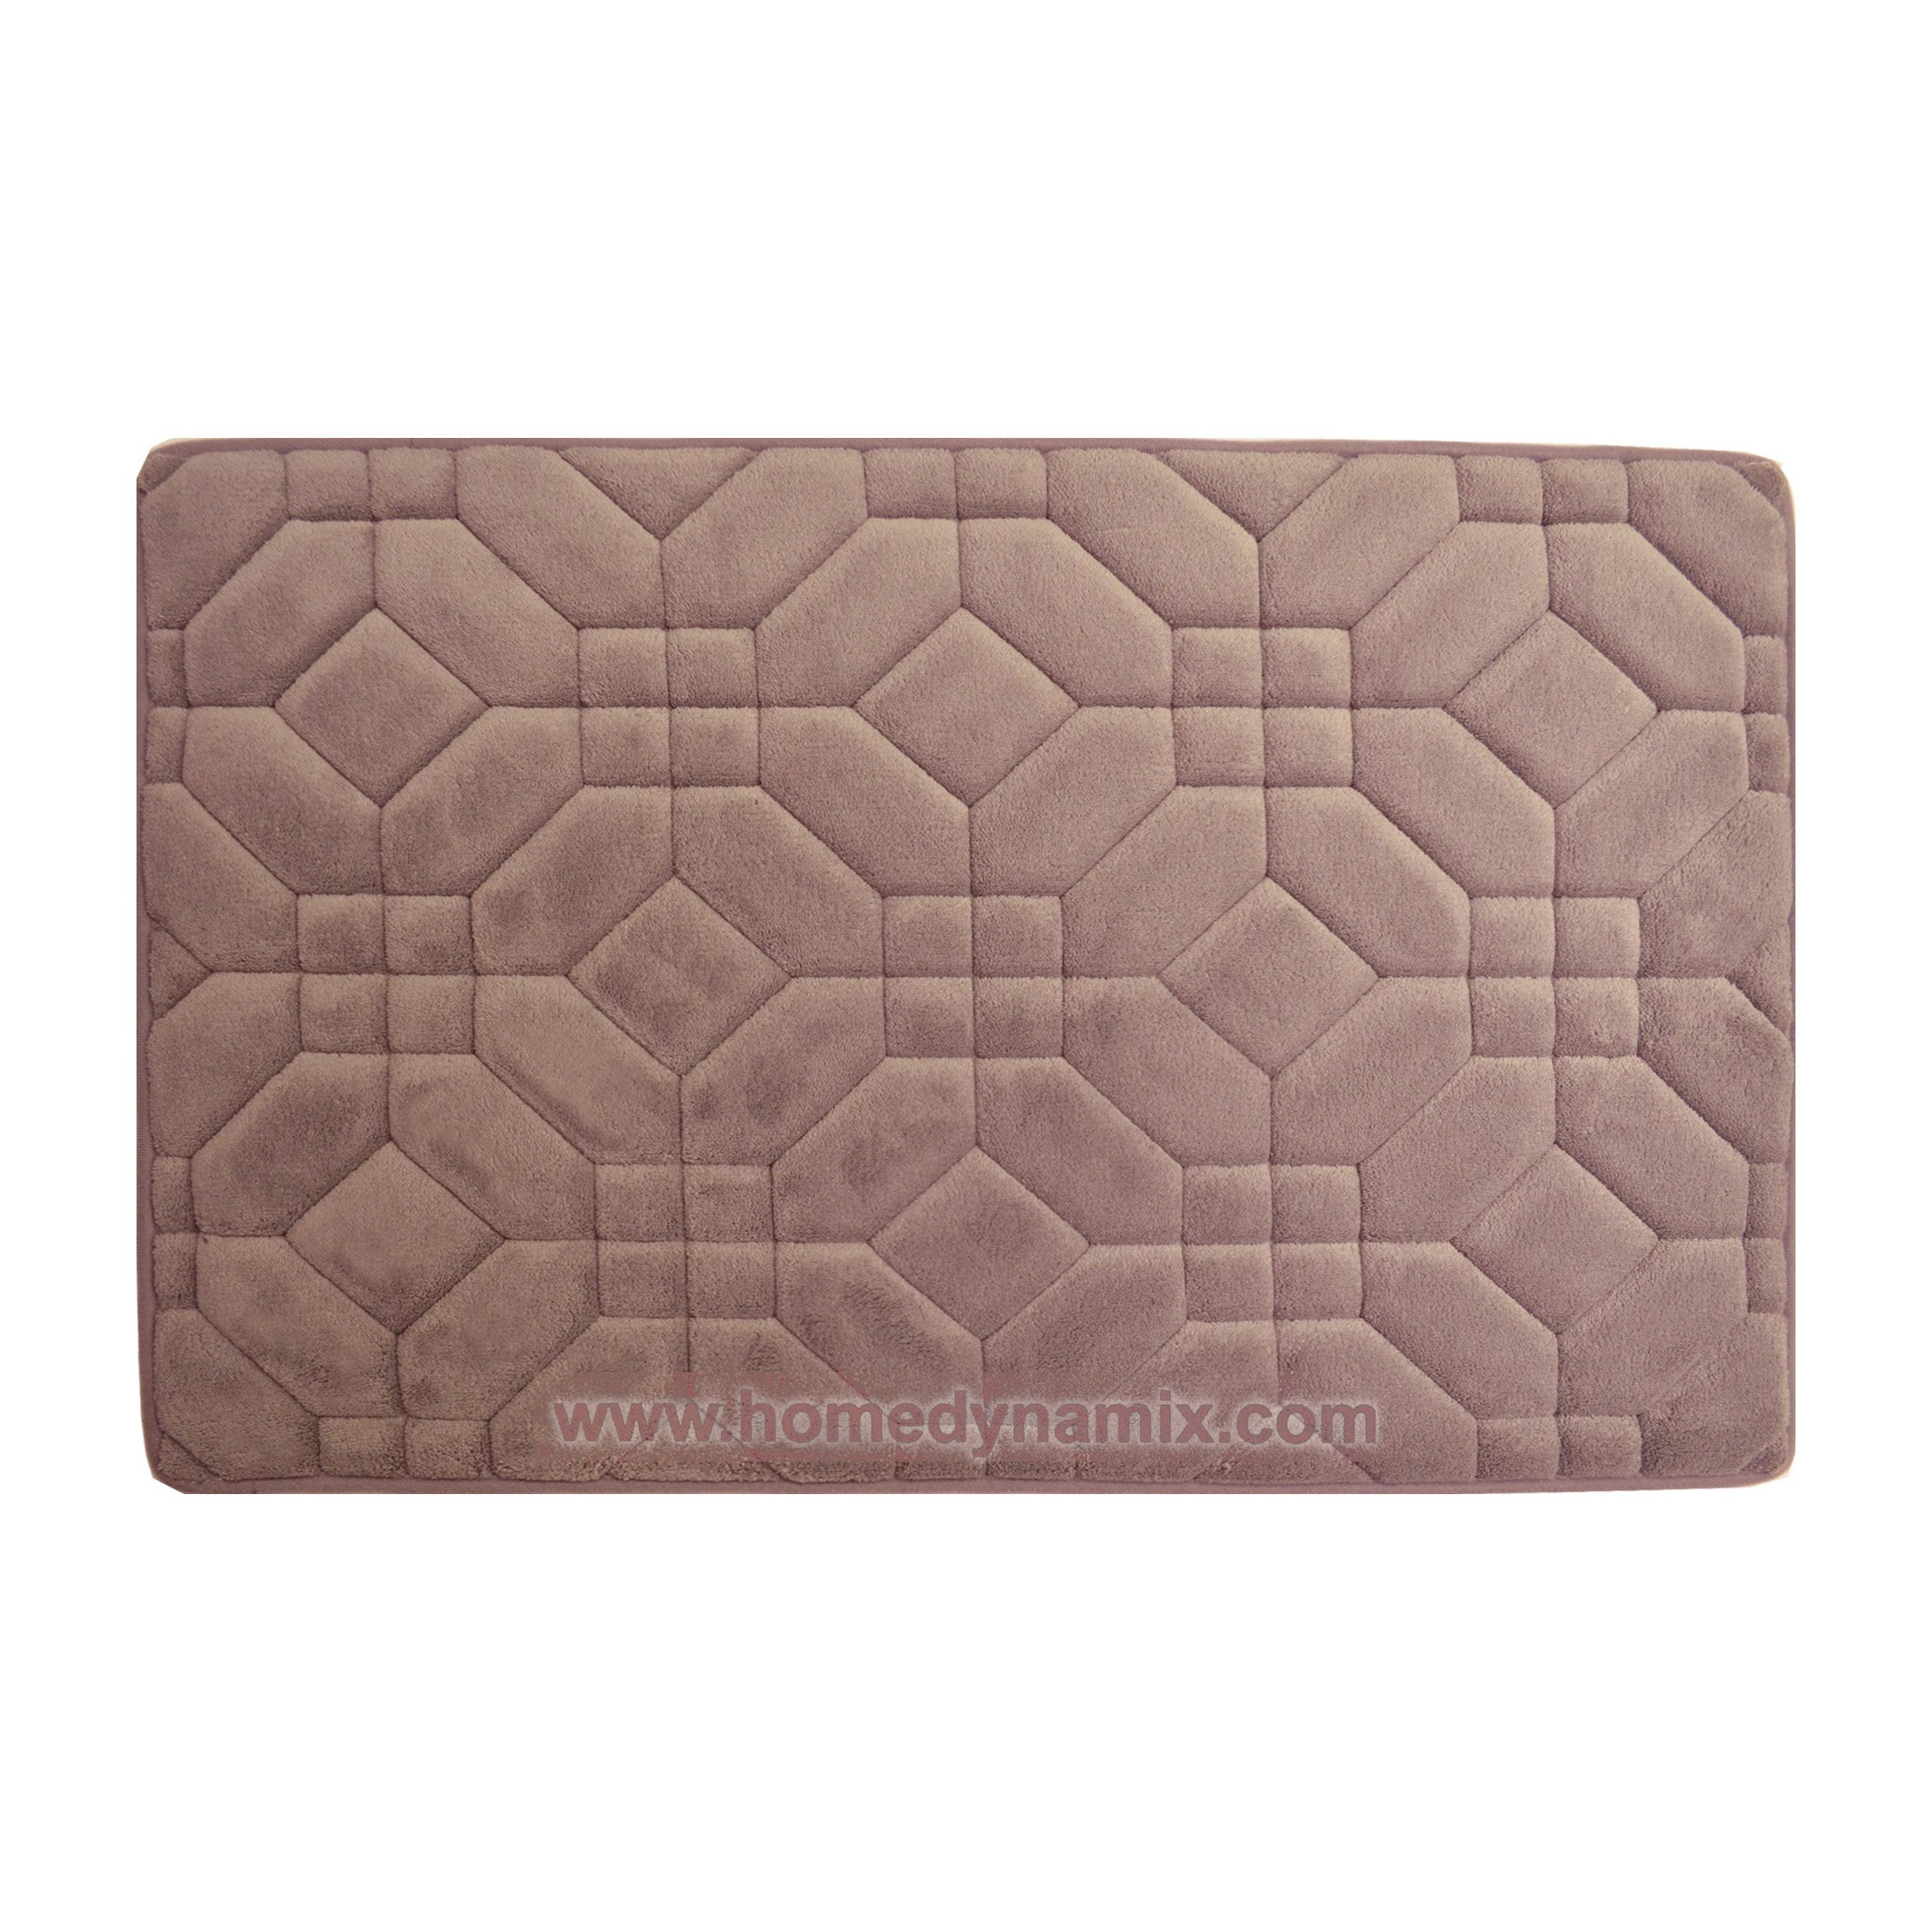 Dysty Mauve Memory Foam Bathroom Mat/rug : Day Spa Tiles Design, Soft and Absorbent, Non-skid Backing (20'' x 30'')